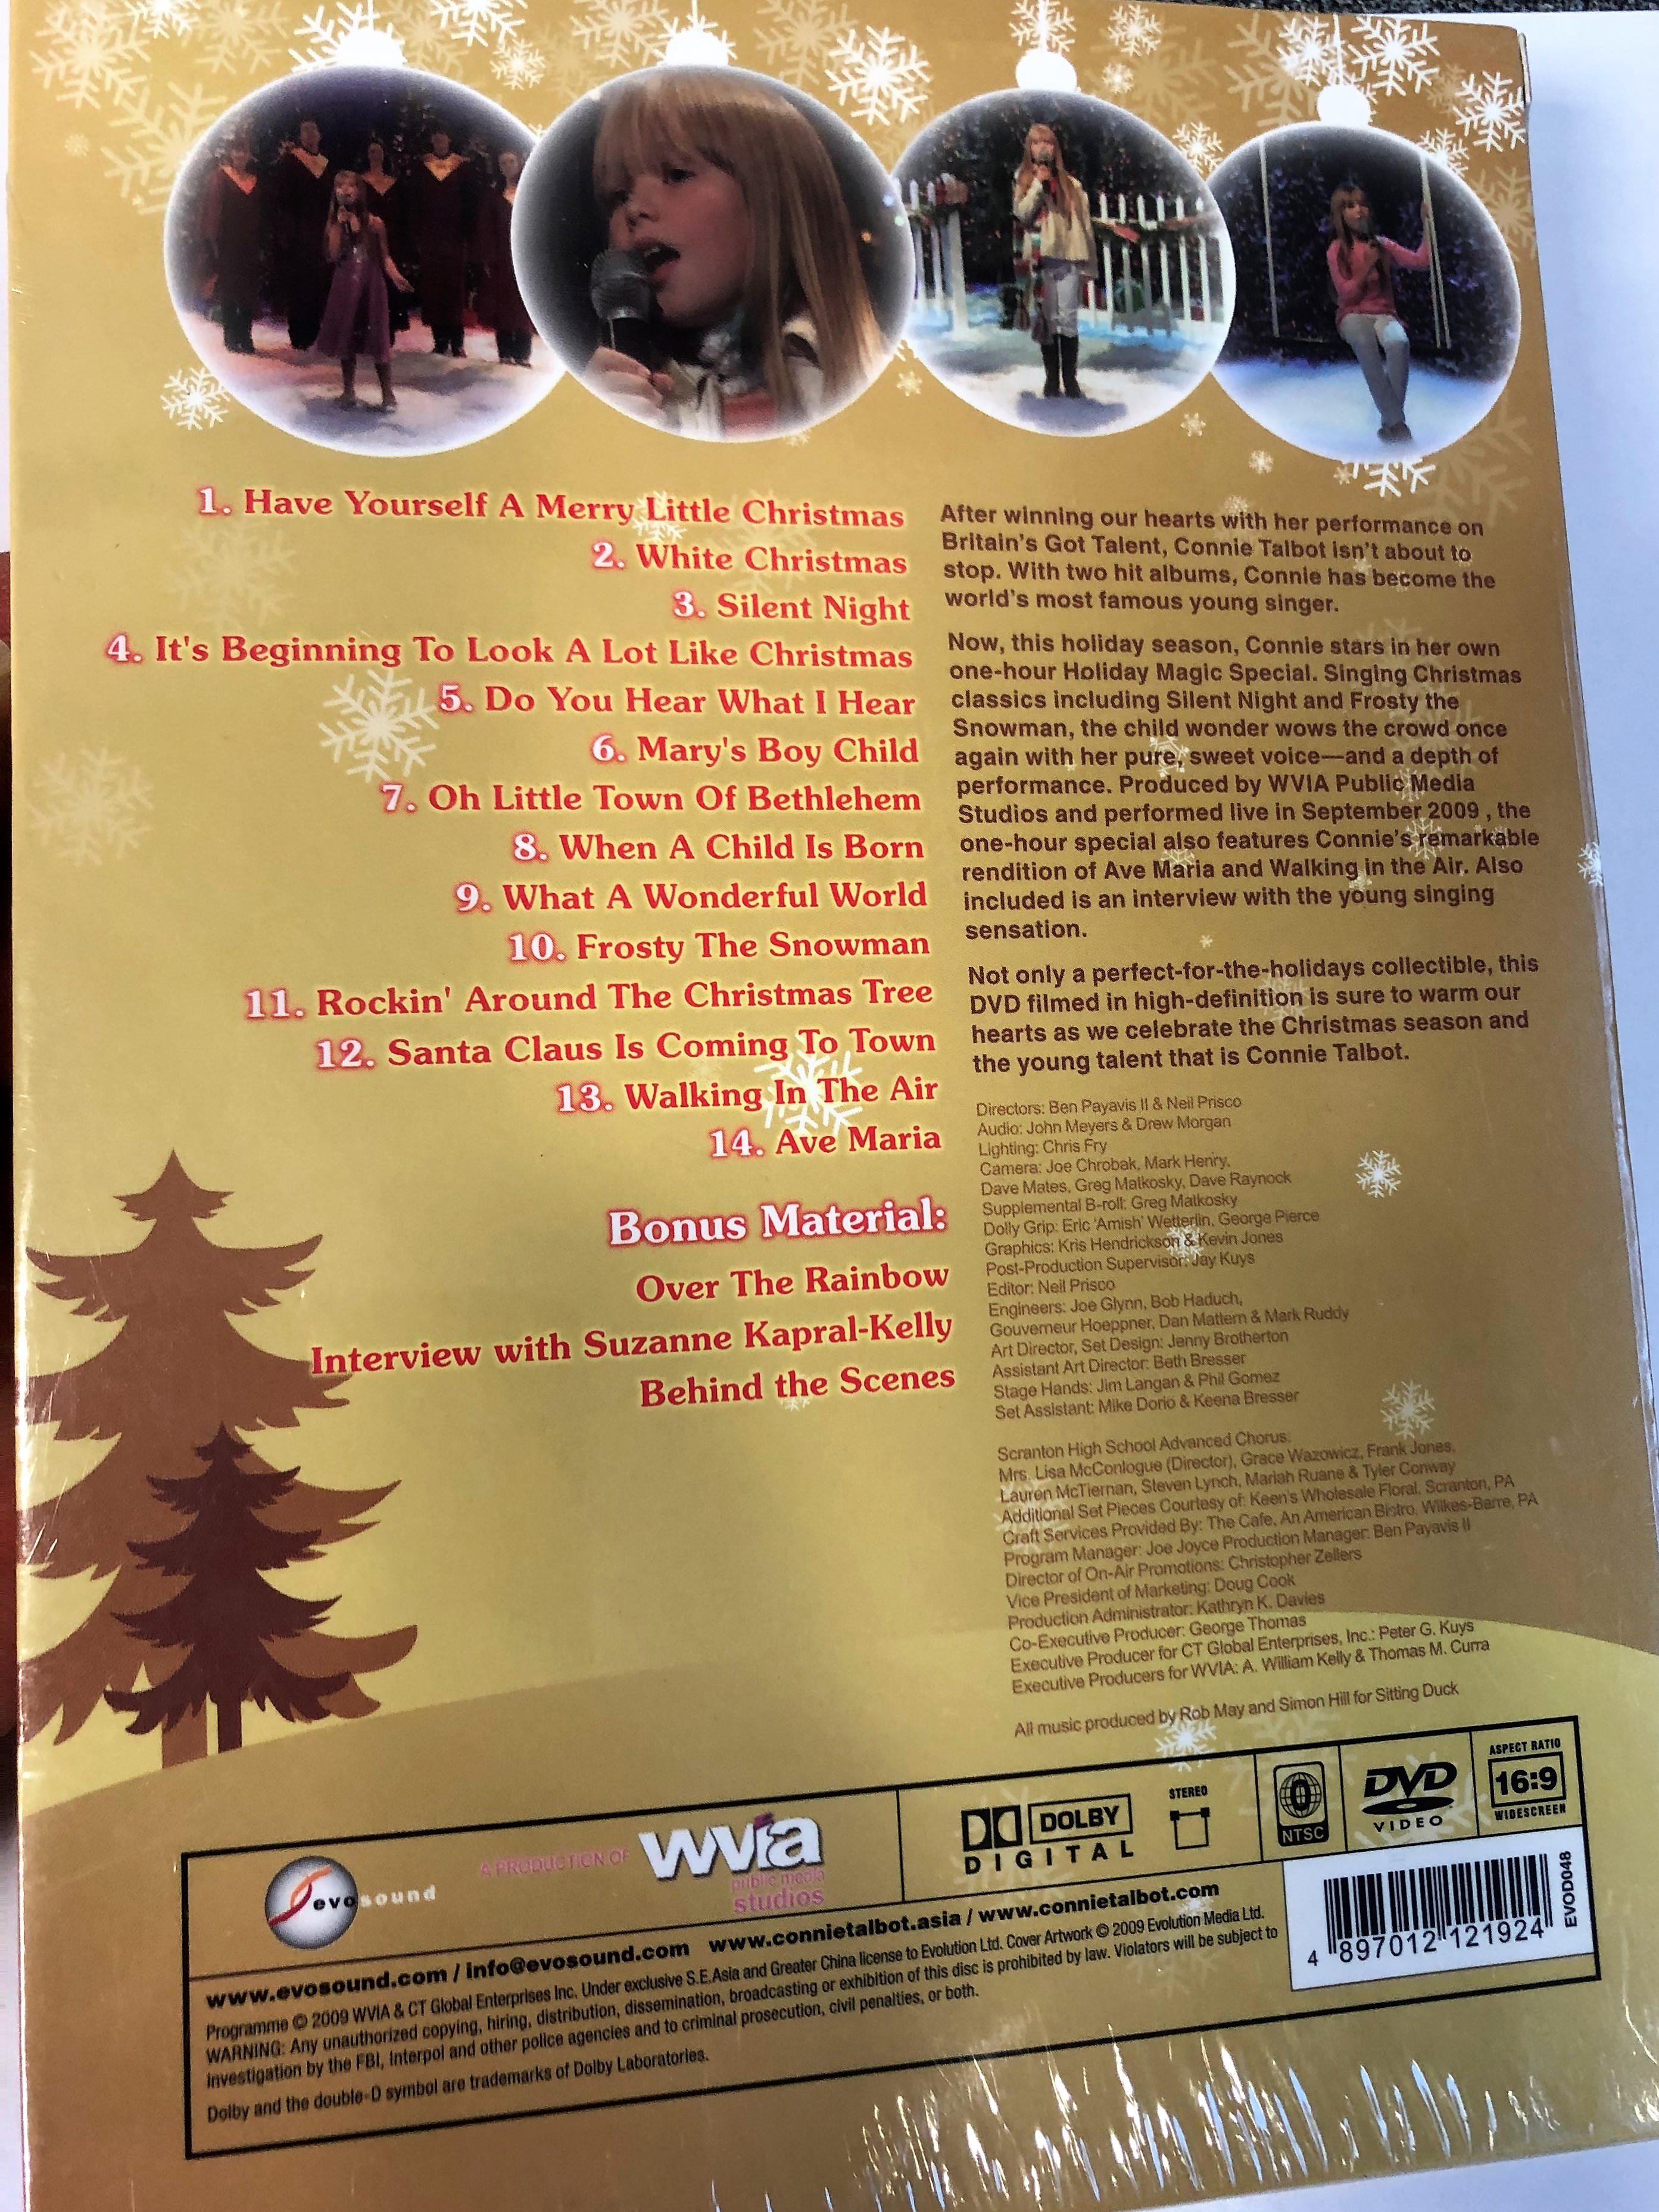 holiday-magic-live-dvd-2009-starring-connie-talbot-directed-by-ben-payavis-ii-and-neil-prisco-hong-kong-version-3-.jpg